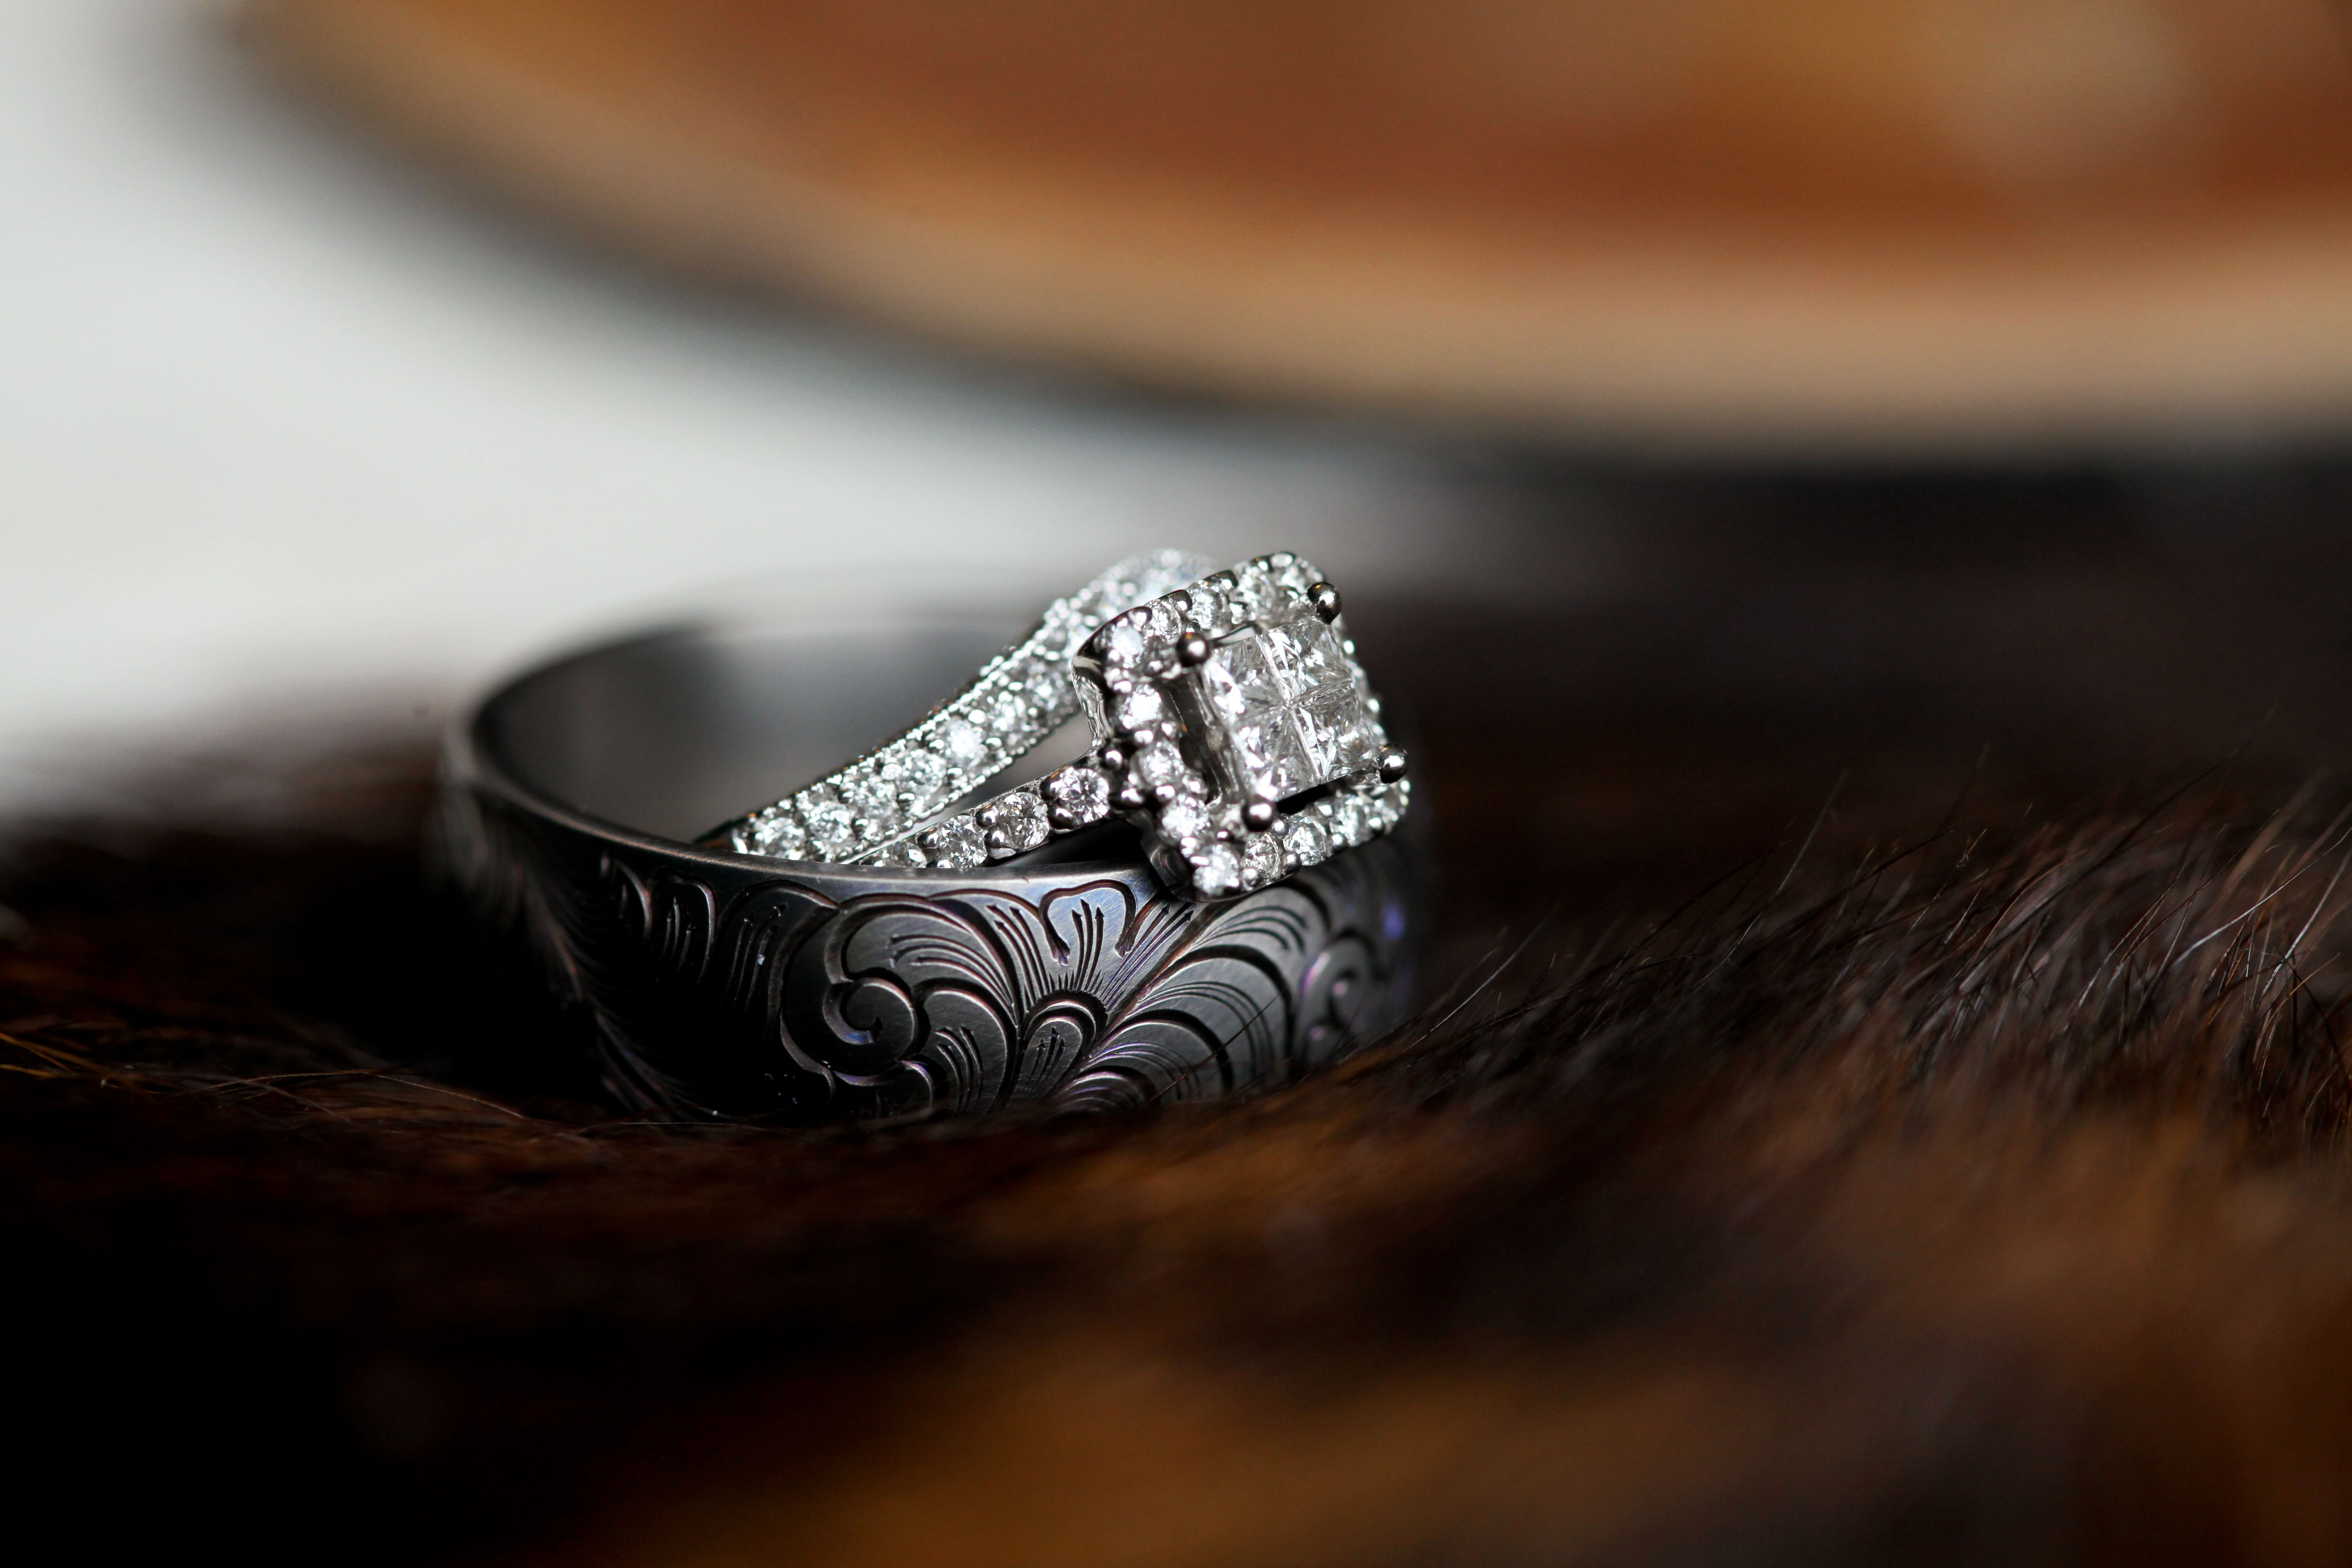 Western mens wedding band from Reid's Jewelers in Fort